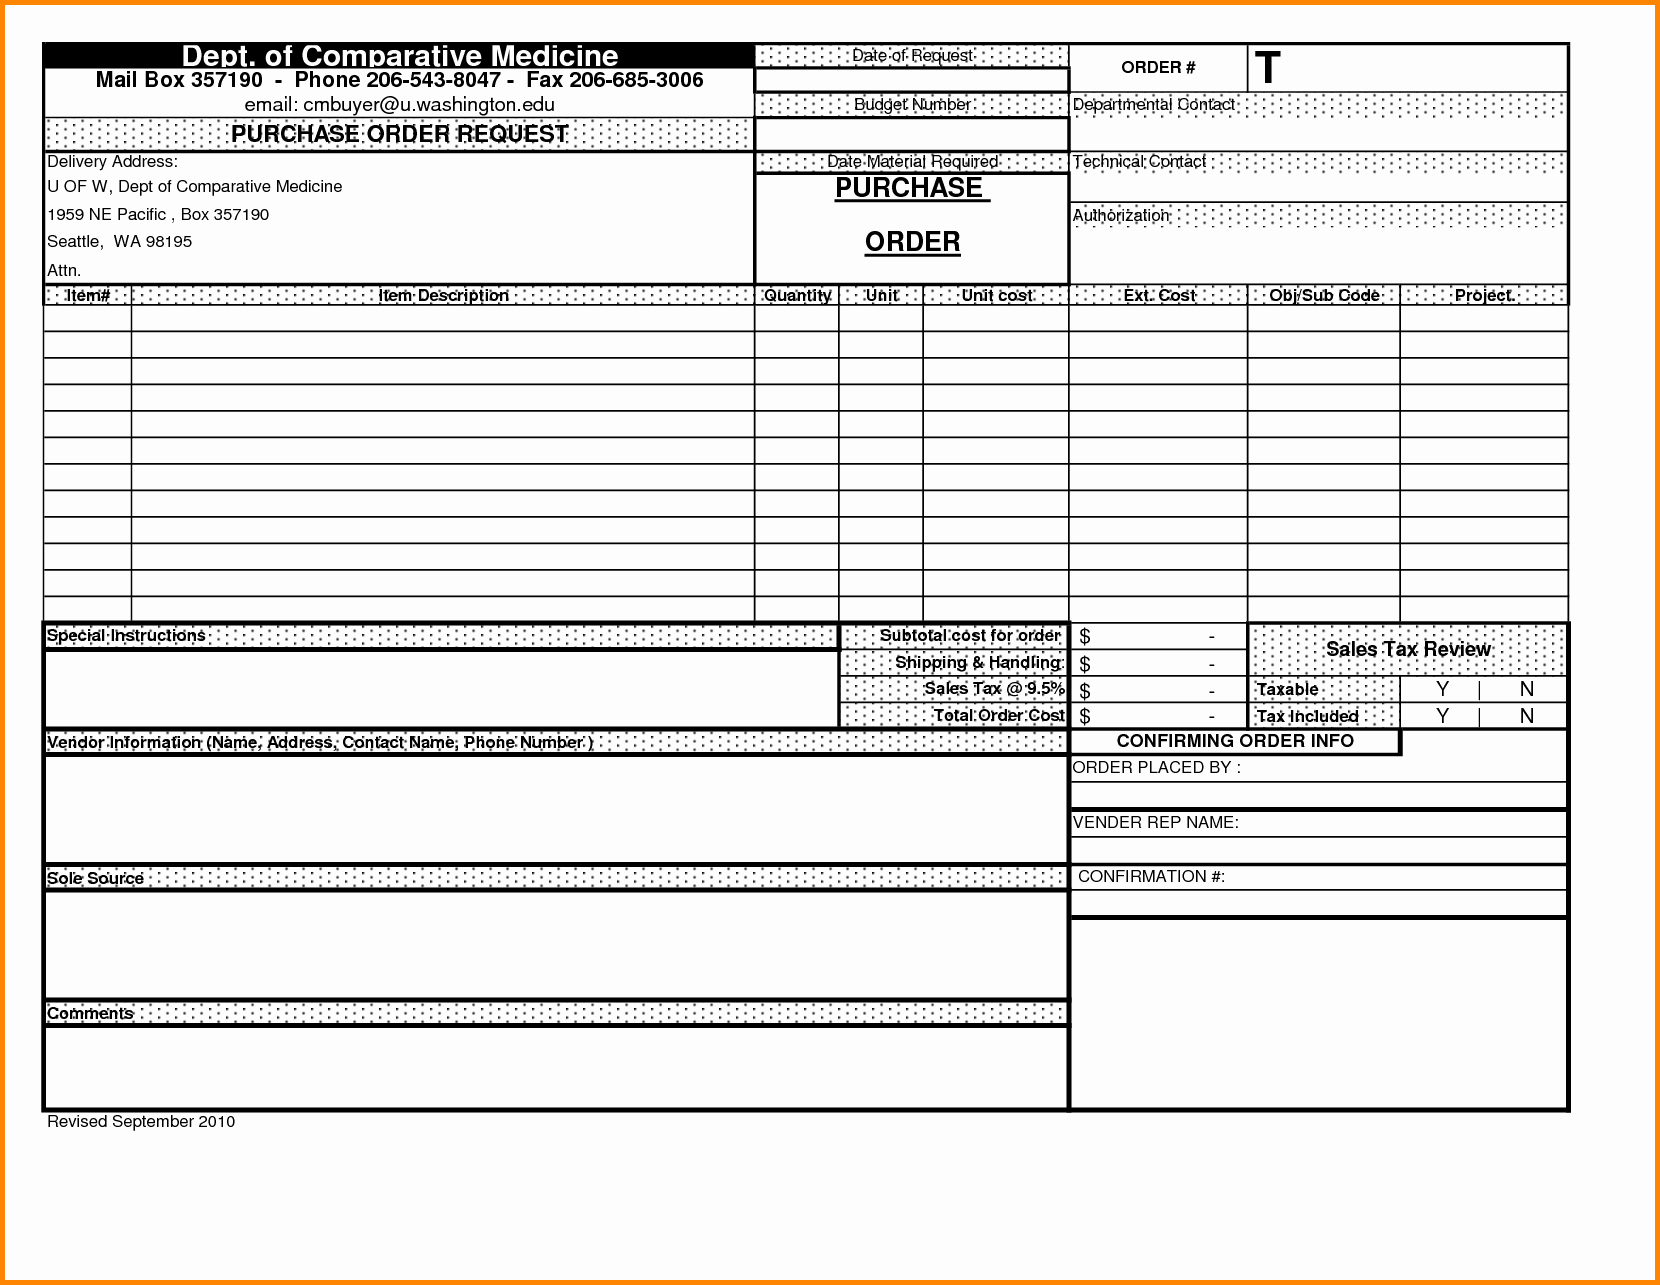 Purchasing Requisition form Templates Elegant Purchase order Request form Template Excel Archives Ah